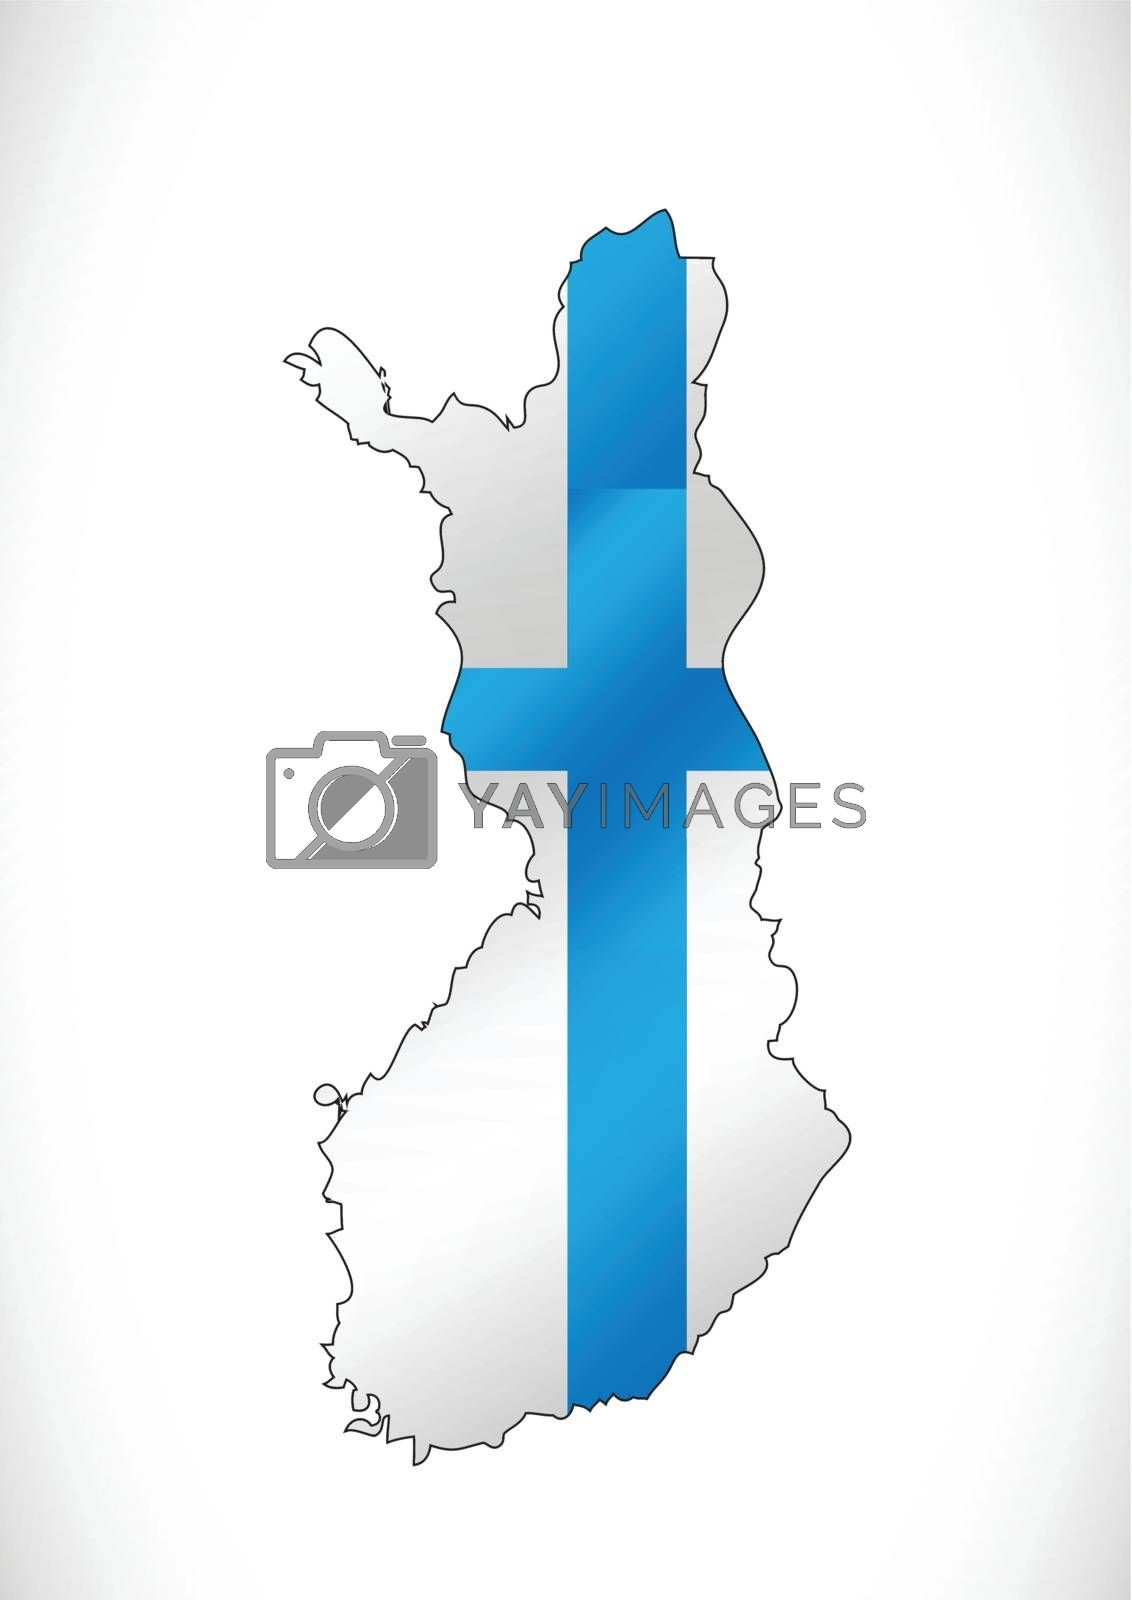 Finland map and flag idea design by kiddaikiddee